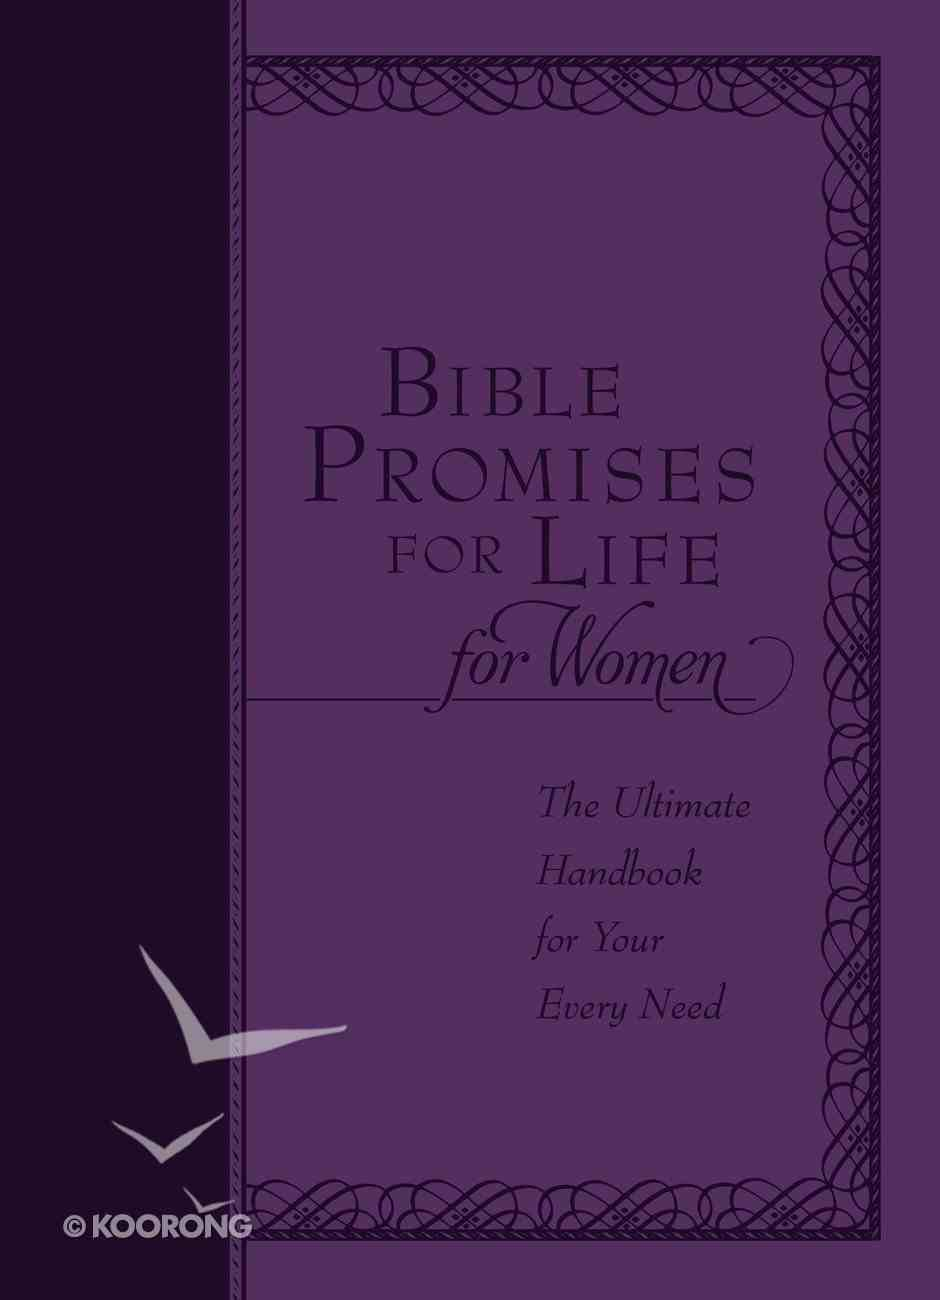 Bible Promises For Life For Women eBook